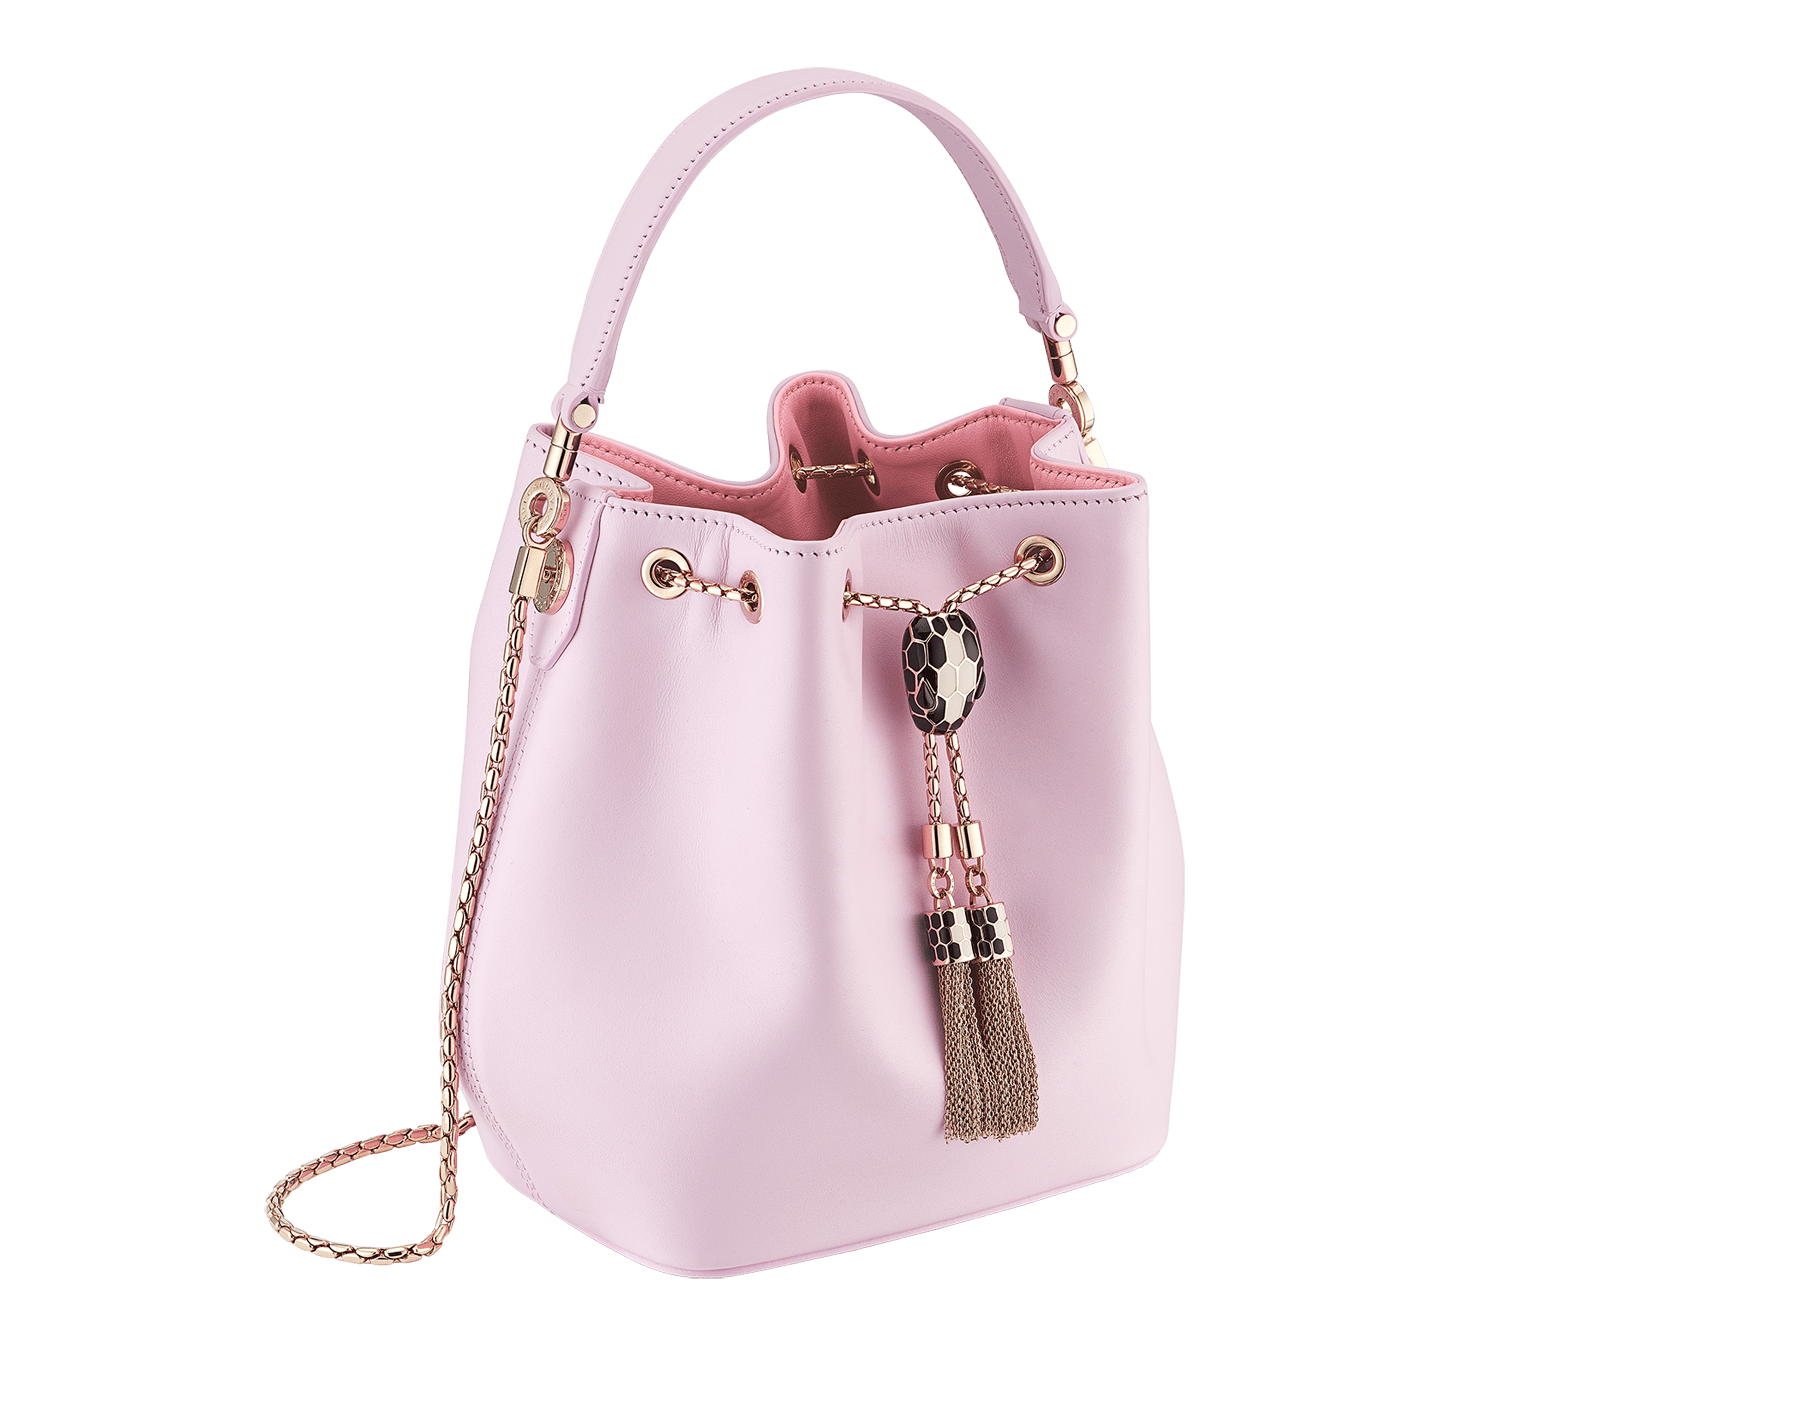 Serpenti Forever bucket in rosa di francia smooth calf leather and a flamingo quartz inner lining. Hardware in light gold plated brass and snakehead closure in black and white enamel, with eyes in black onyx. 288769 image 2